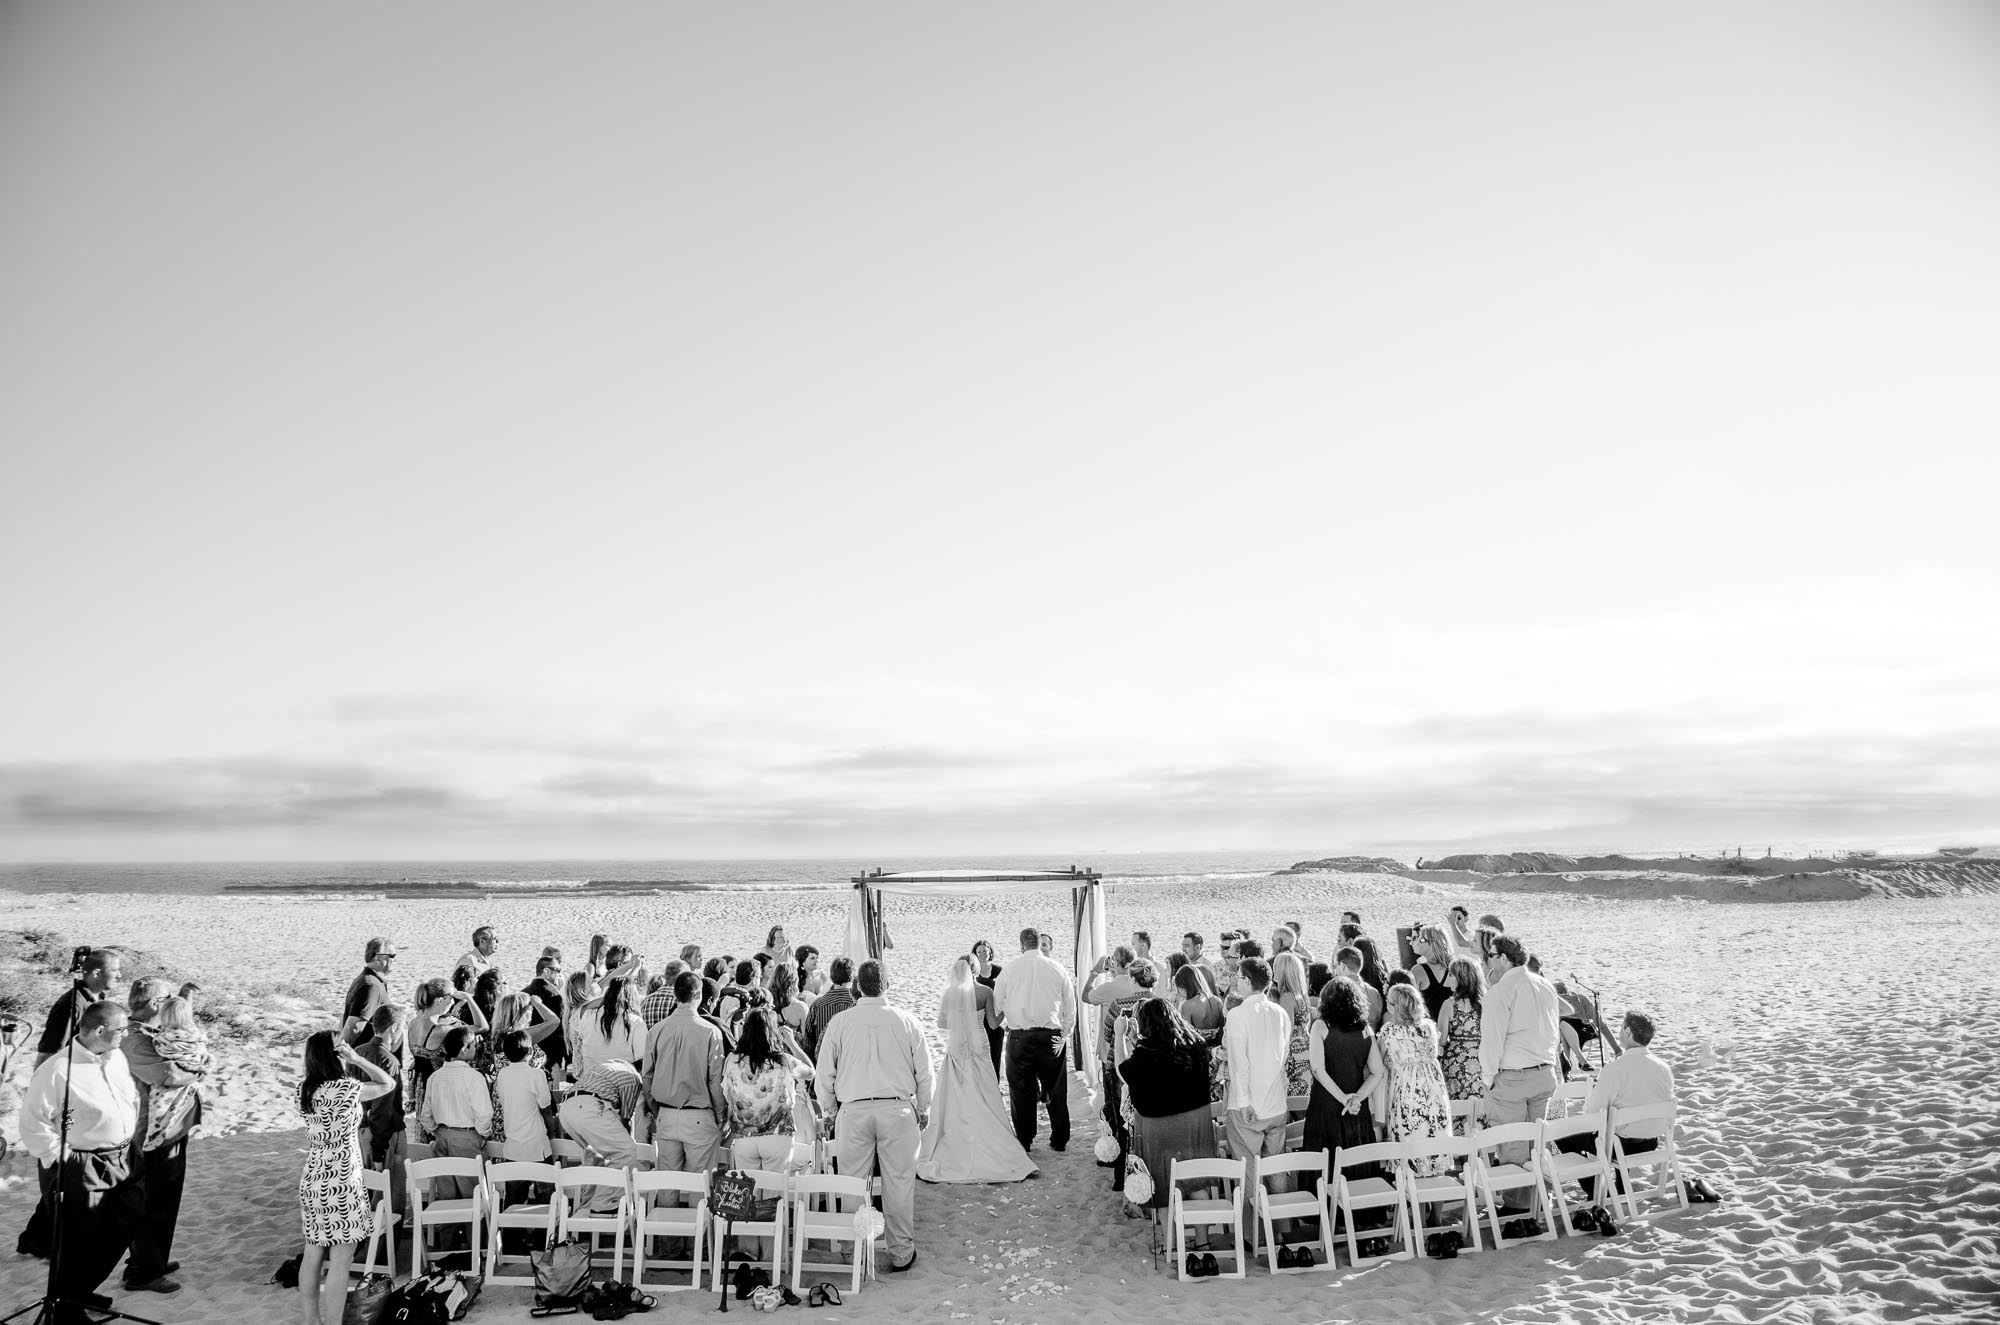 Beach wedding photography shot by Fallbrook Photography